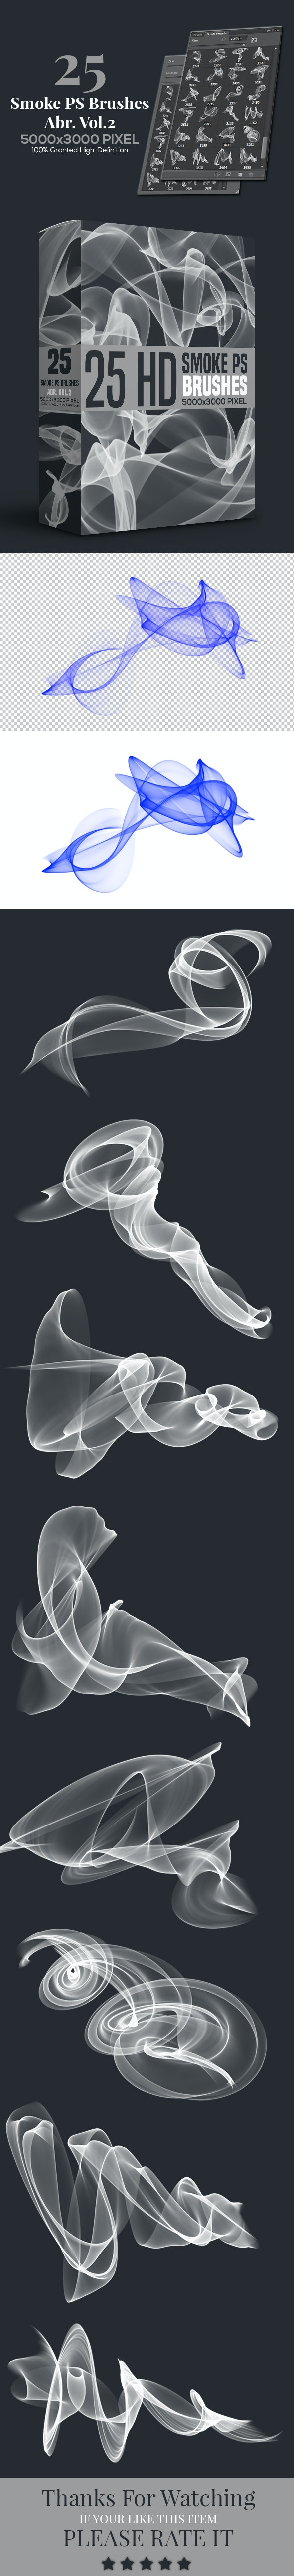 25 Smoke PS Brushes Abr. Vol.2 - Abstract Brushes